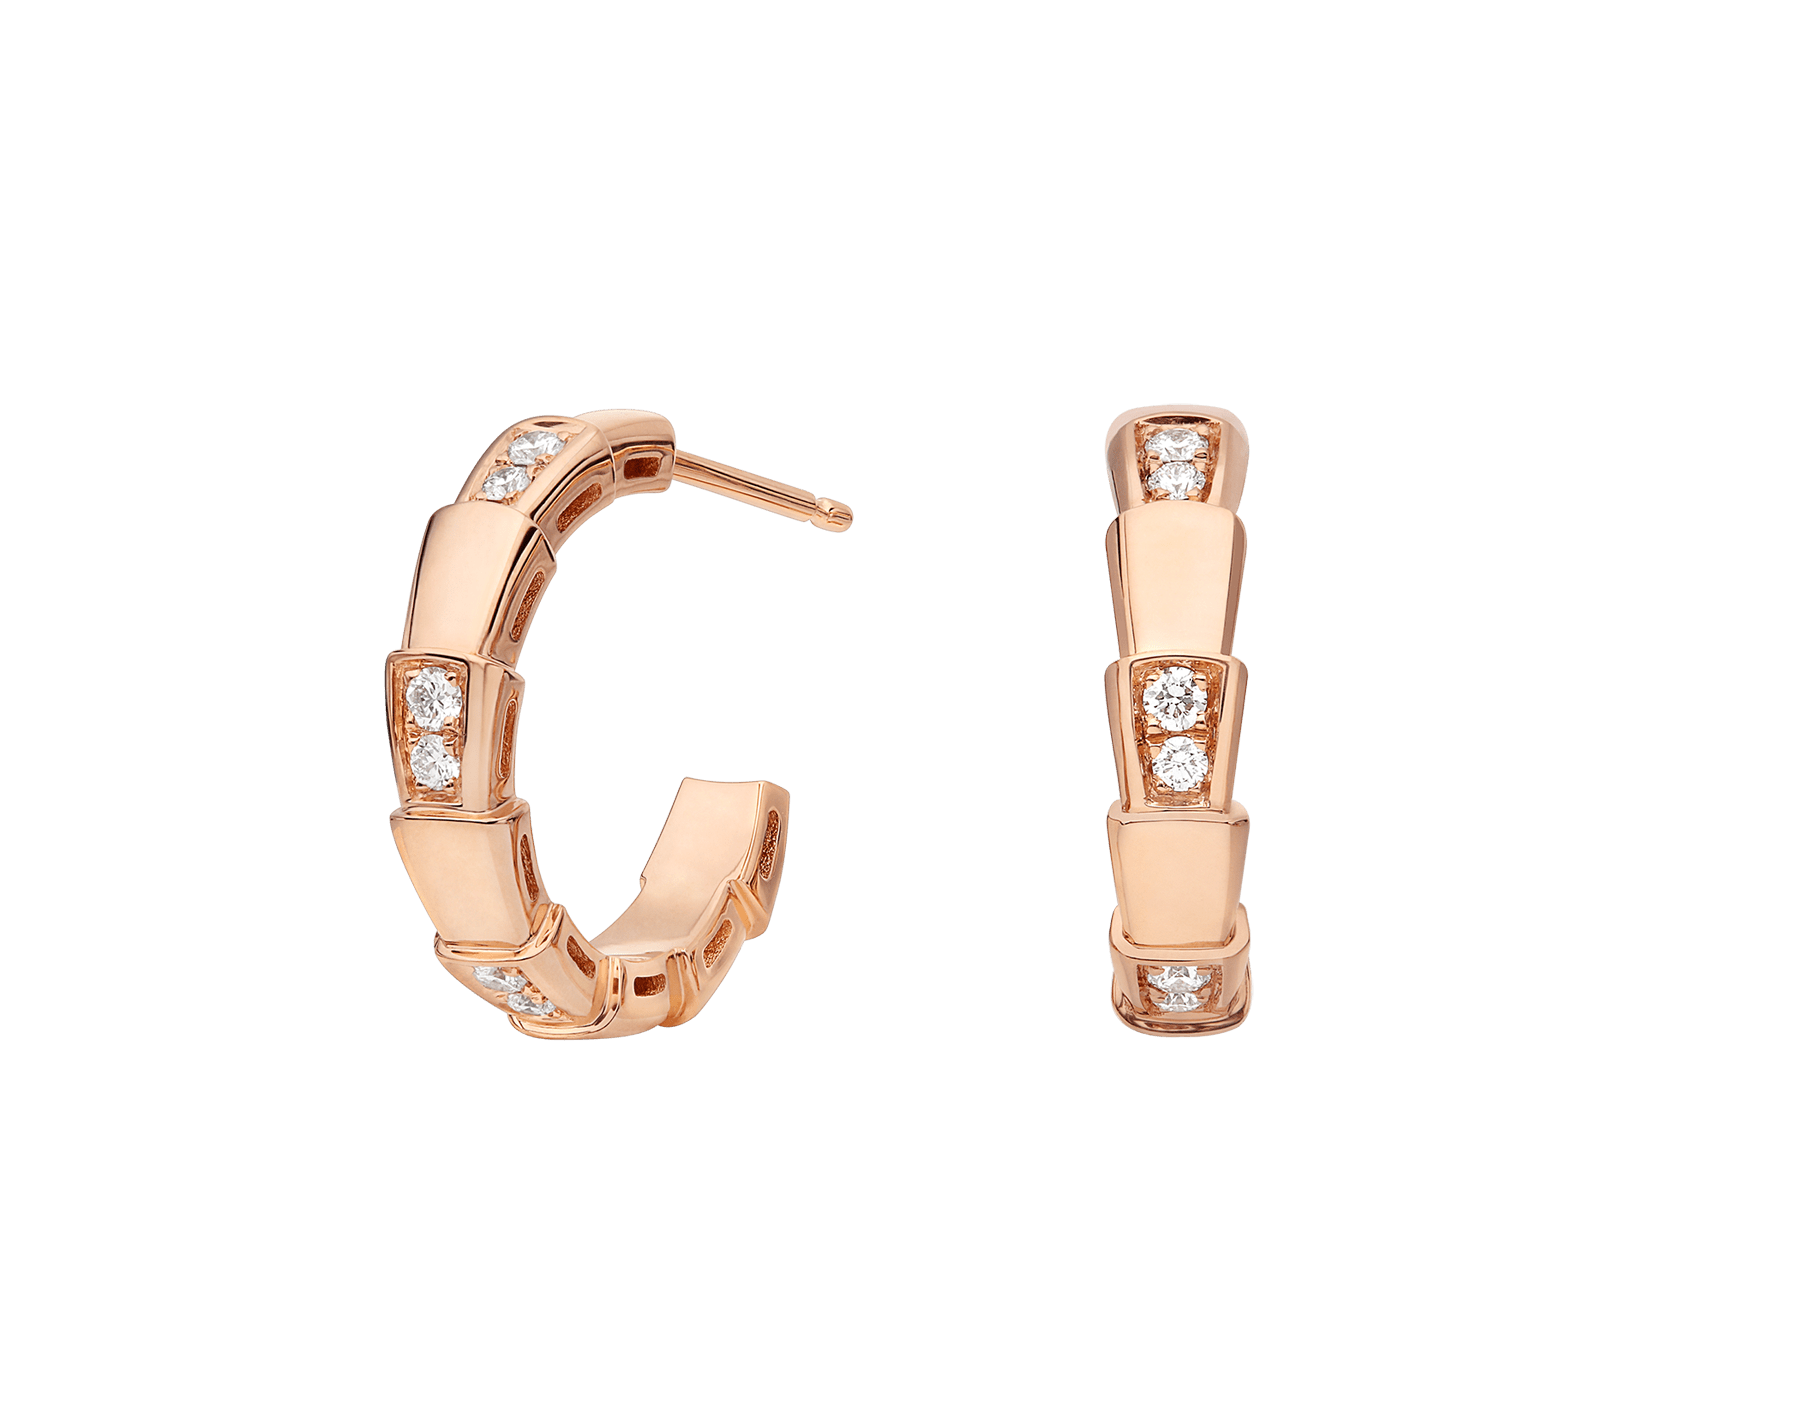 Serpenti Viper 18 kt rose gold earrings set with pavé diamonds (0.28 ct) 356175 image 1